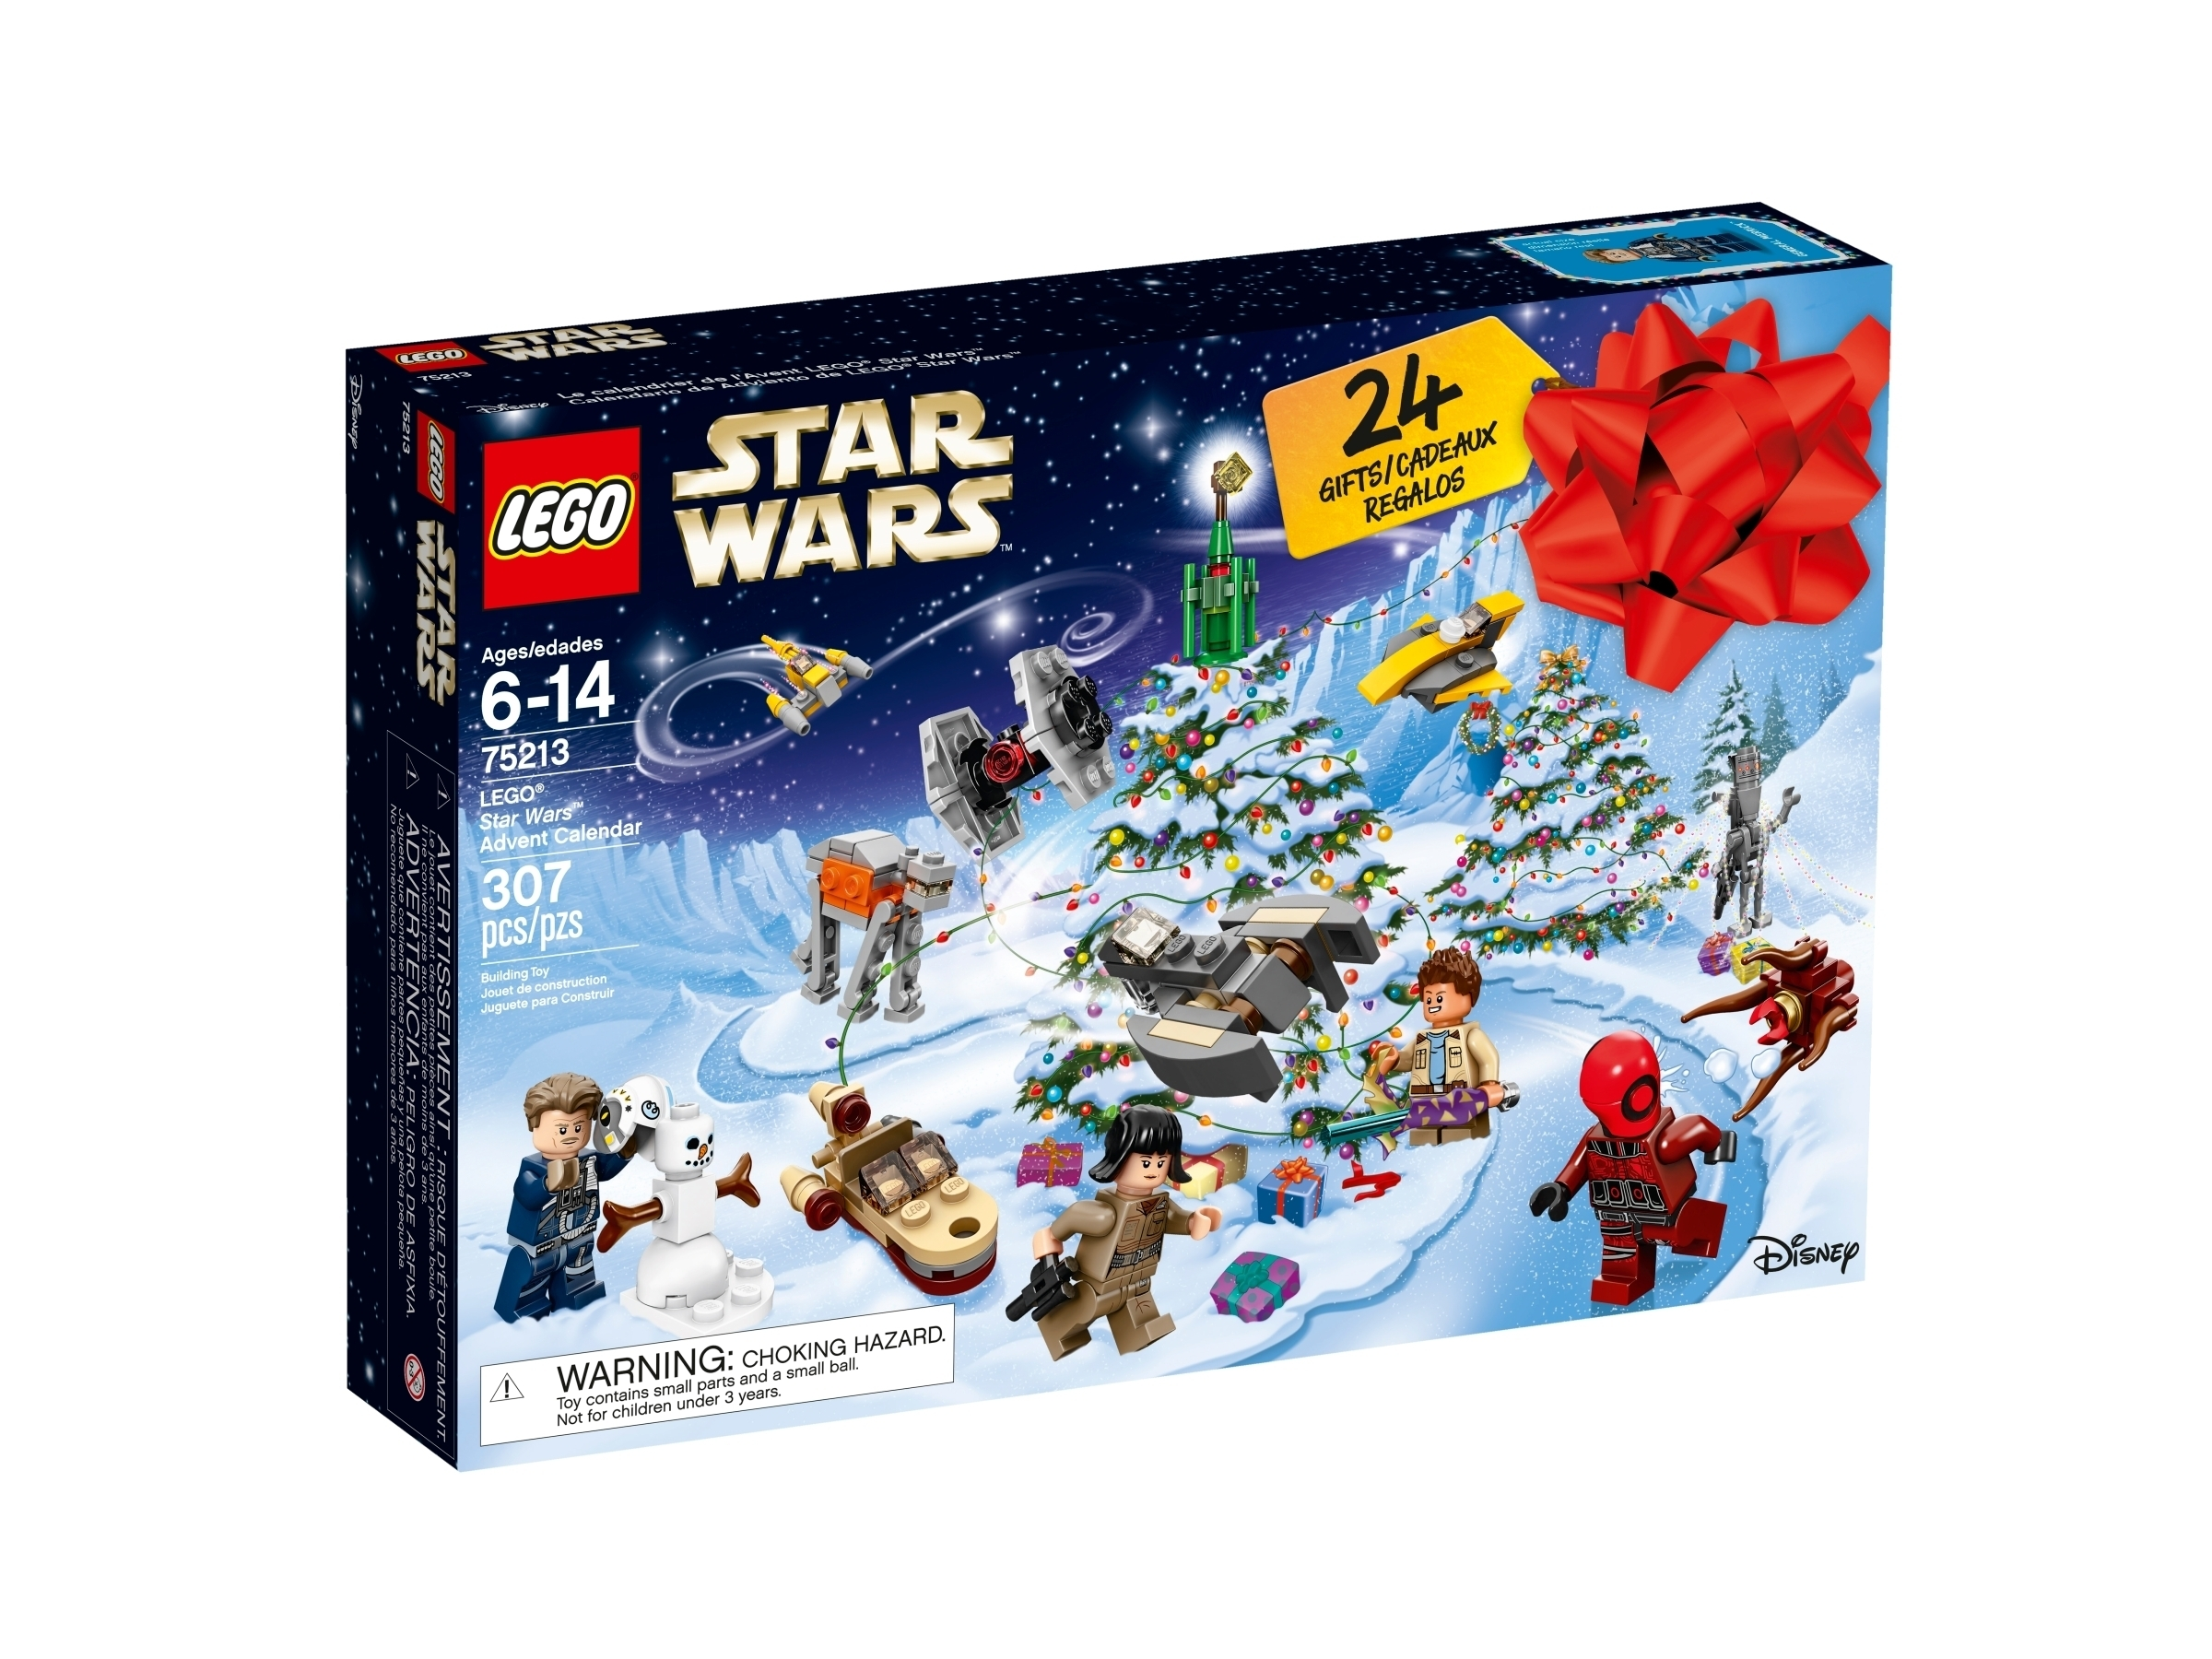 Lego® Star Wars™ Advent Calendar pertaining to Lego Star Wars Callendar 2019